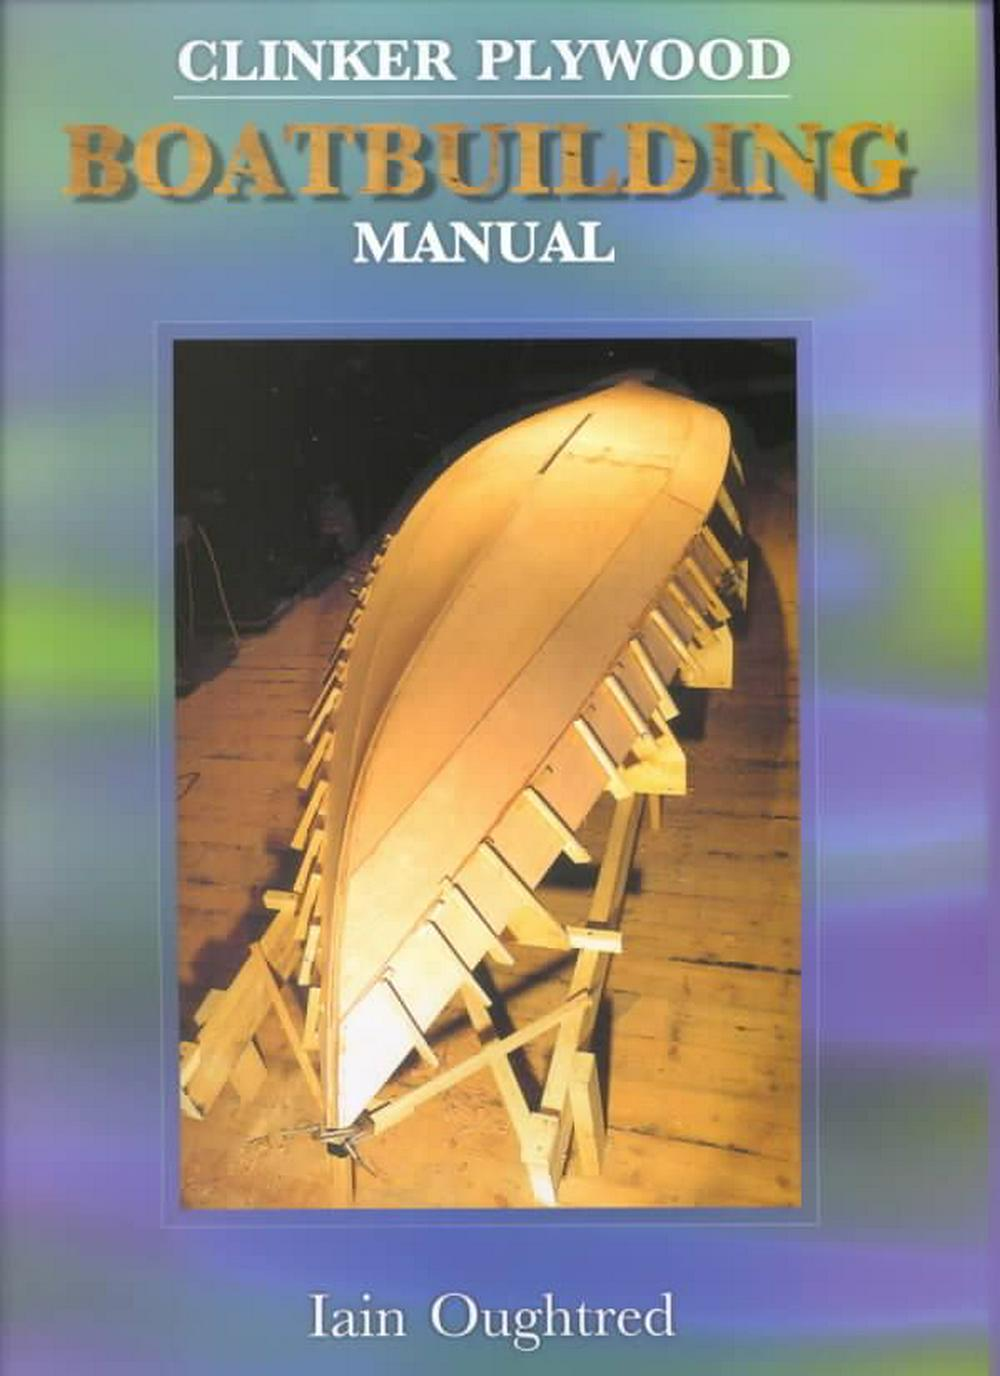 Cover Art for Clinker Plywood Boatbuilding Manual, ISBN: 9780937822616